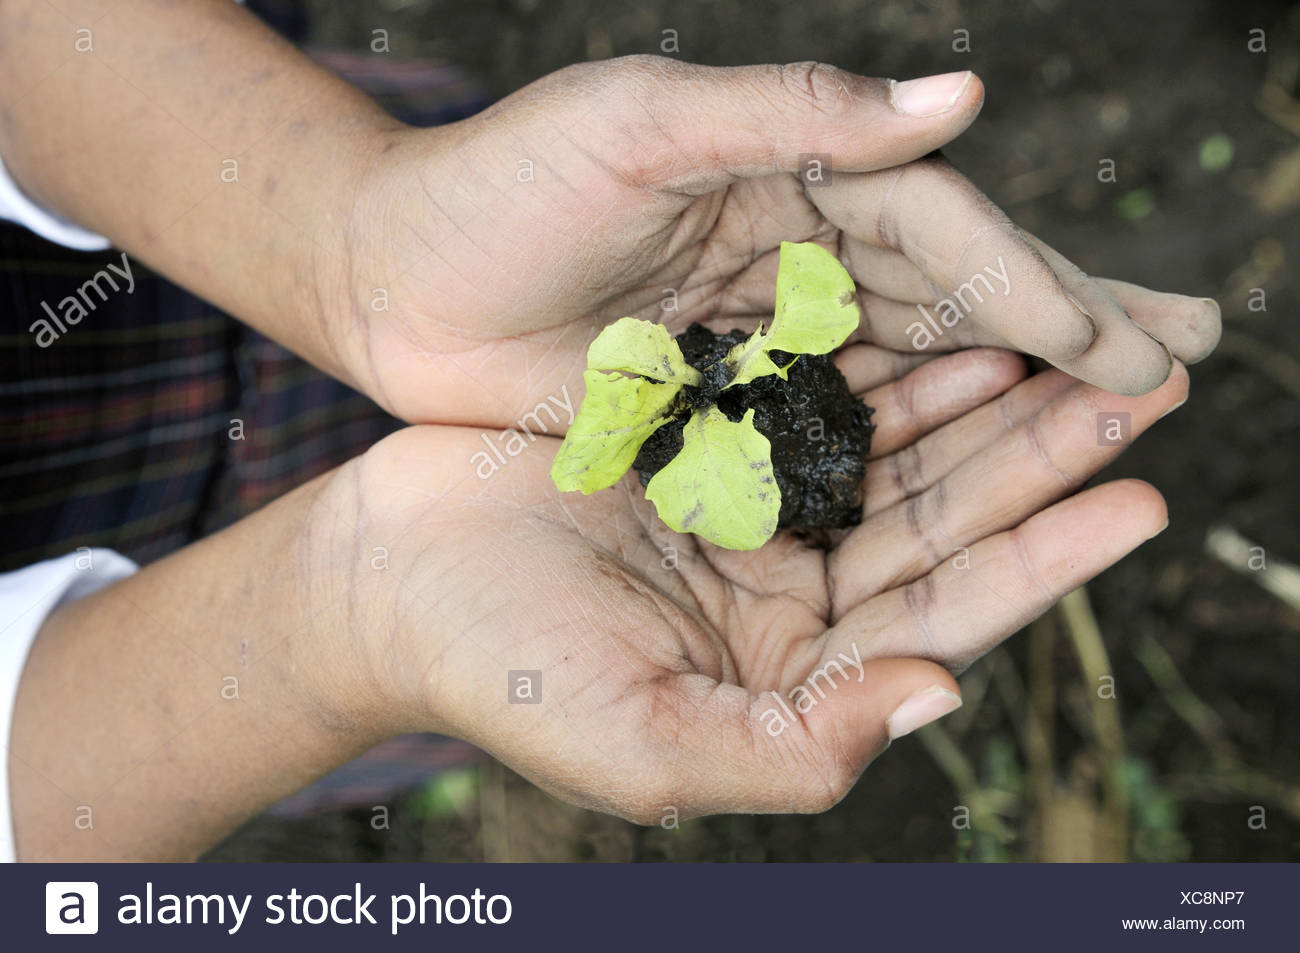 Small lettuce plant, seedling, in the hands of a girl, who is being trained in horticulture as part of an urban agricultural pr - Stock Image